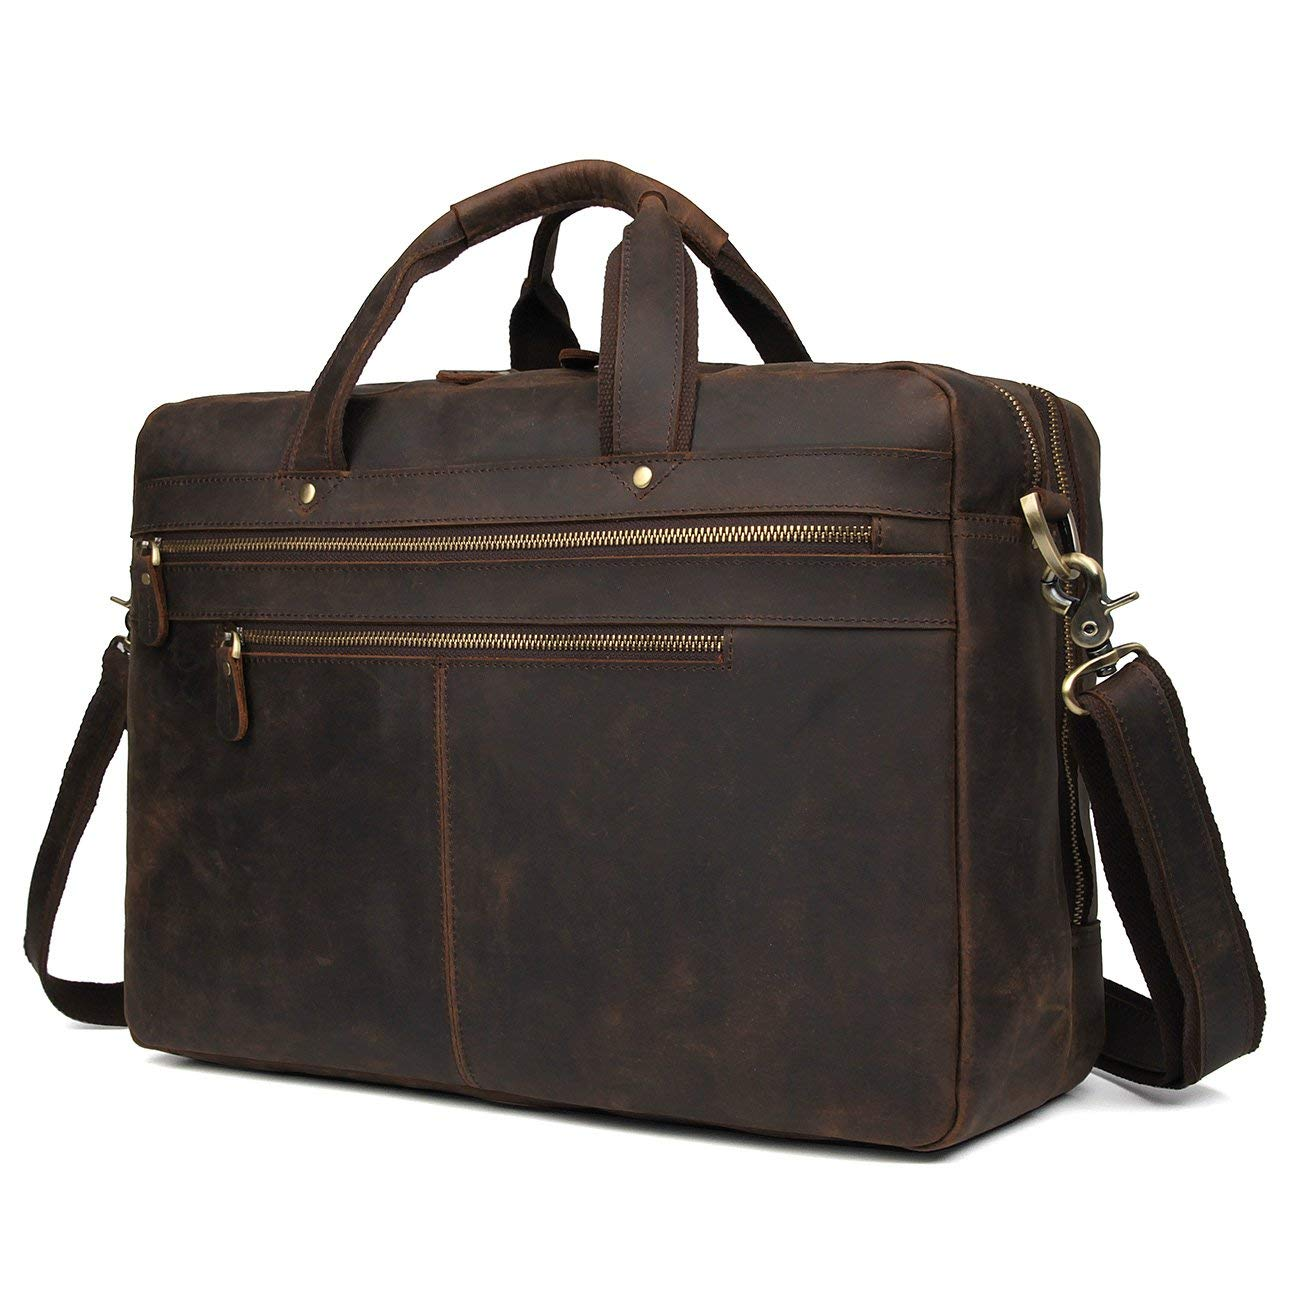 "Polare Vintage Full Grain Leather 17"" Laptop Case Professional Briefcase Business Bag For Men"